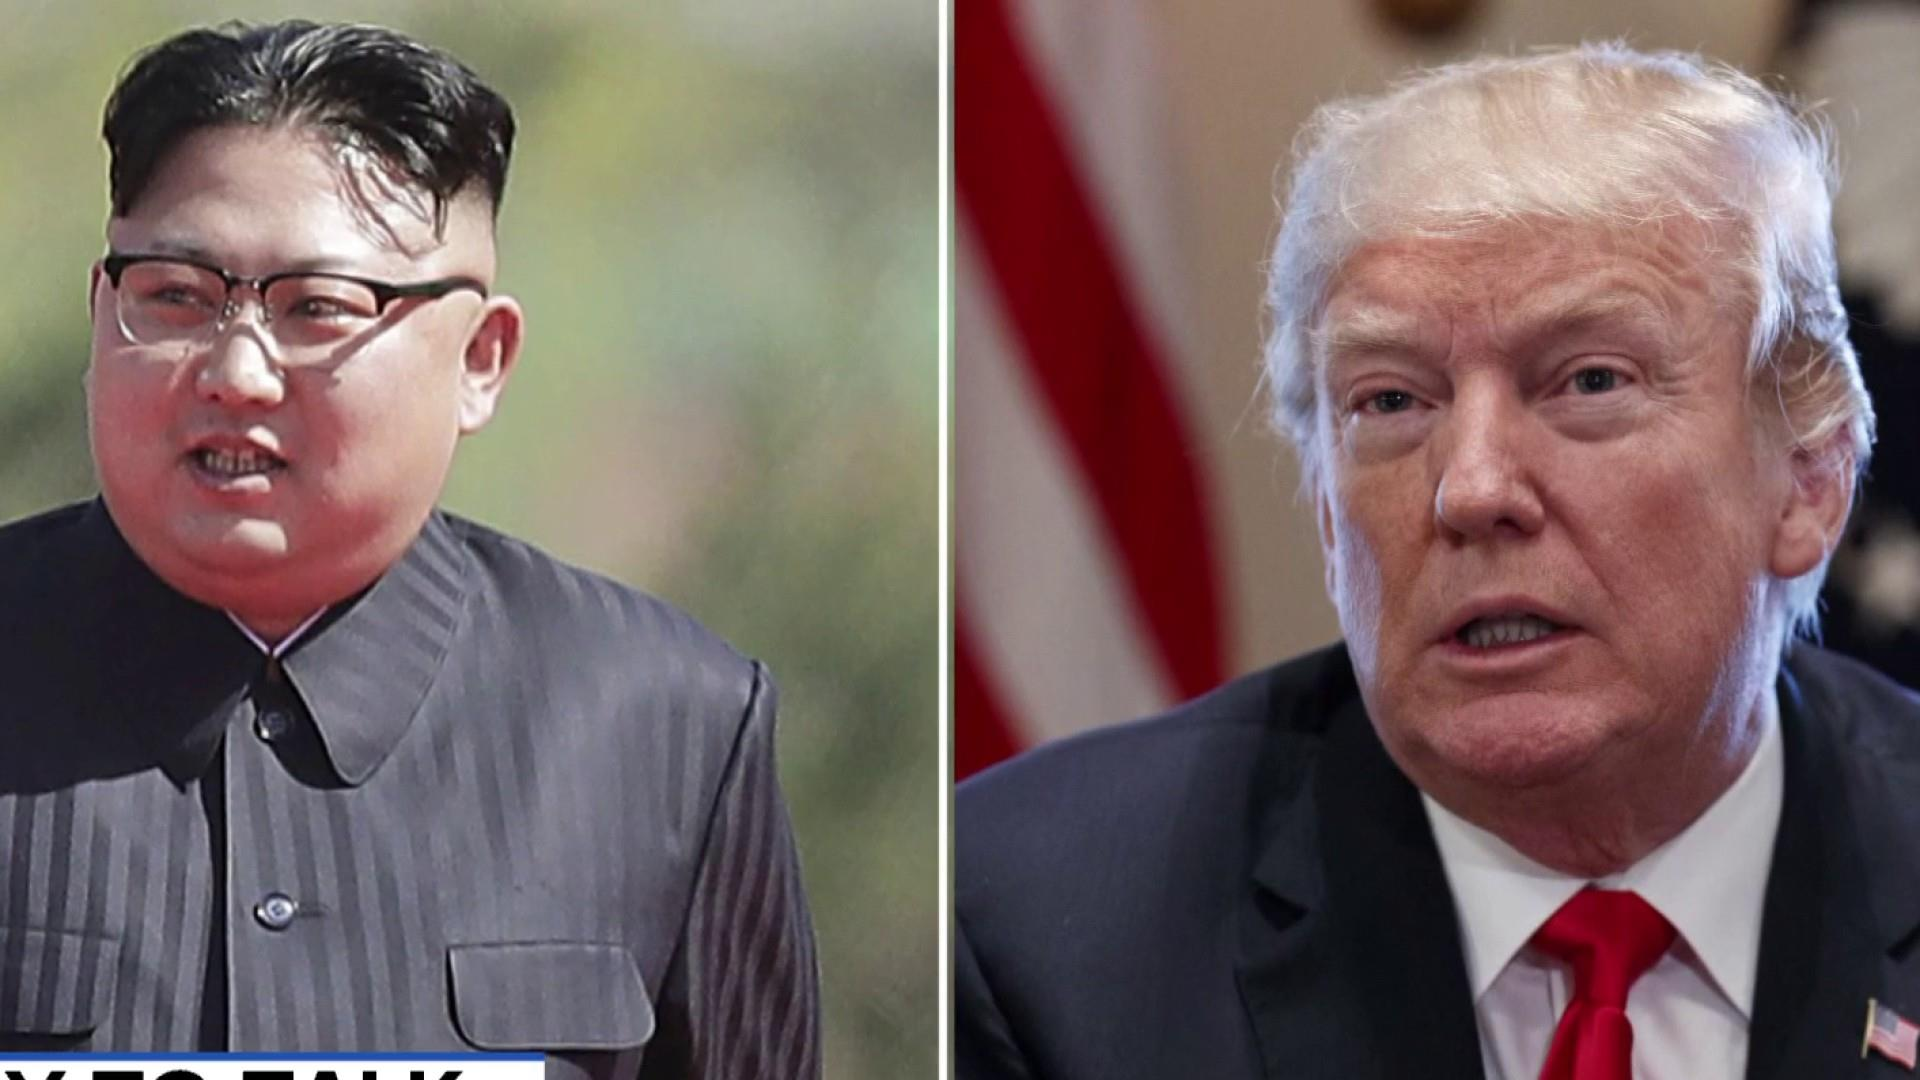 Will Trump Sitting Down With 'Rocket Man' Ease Tensions?